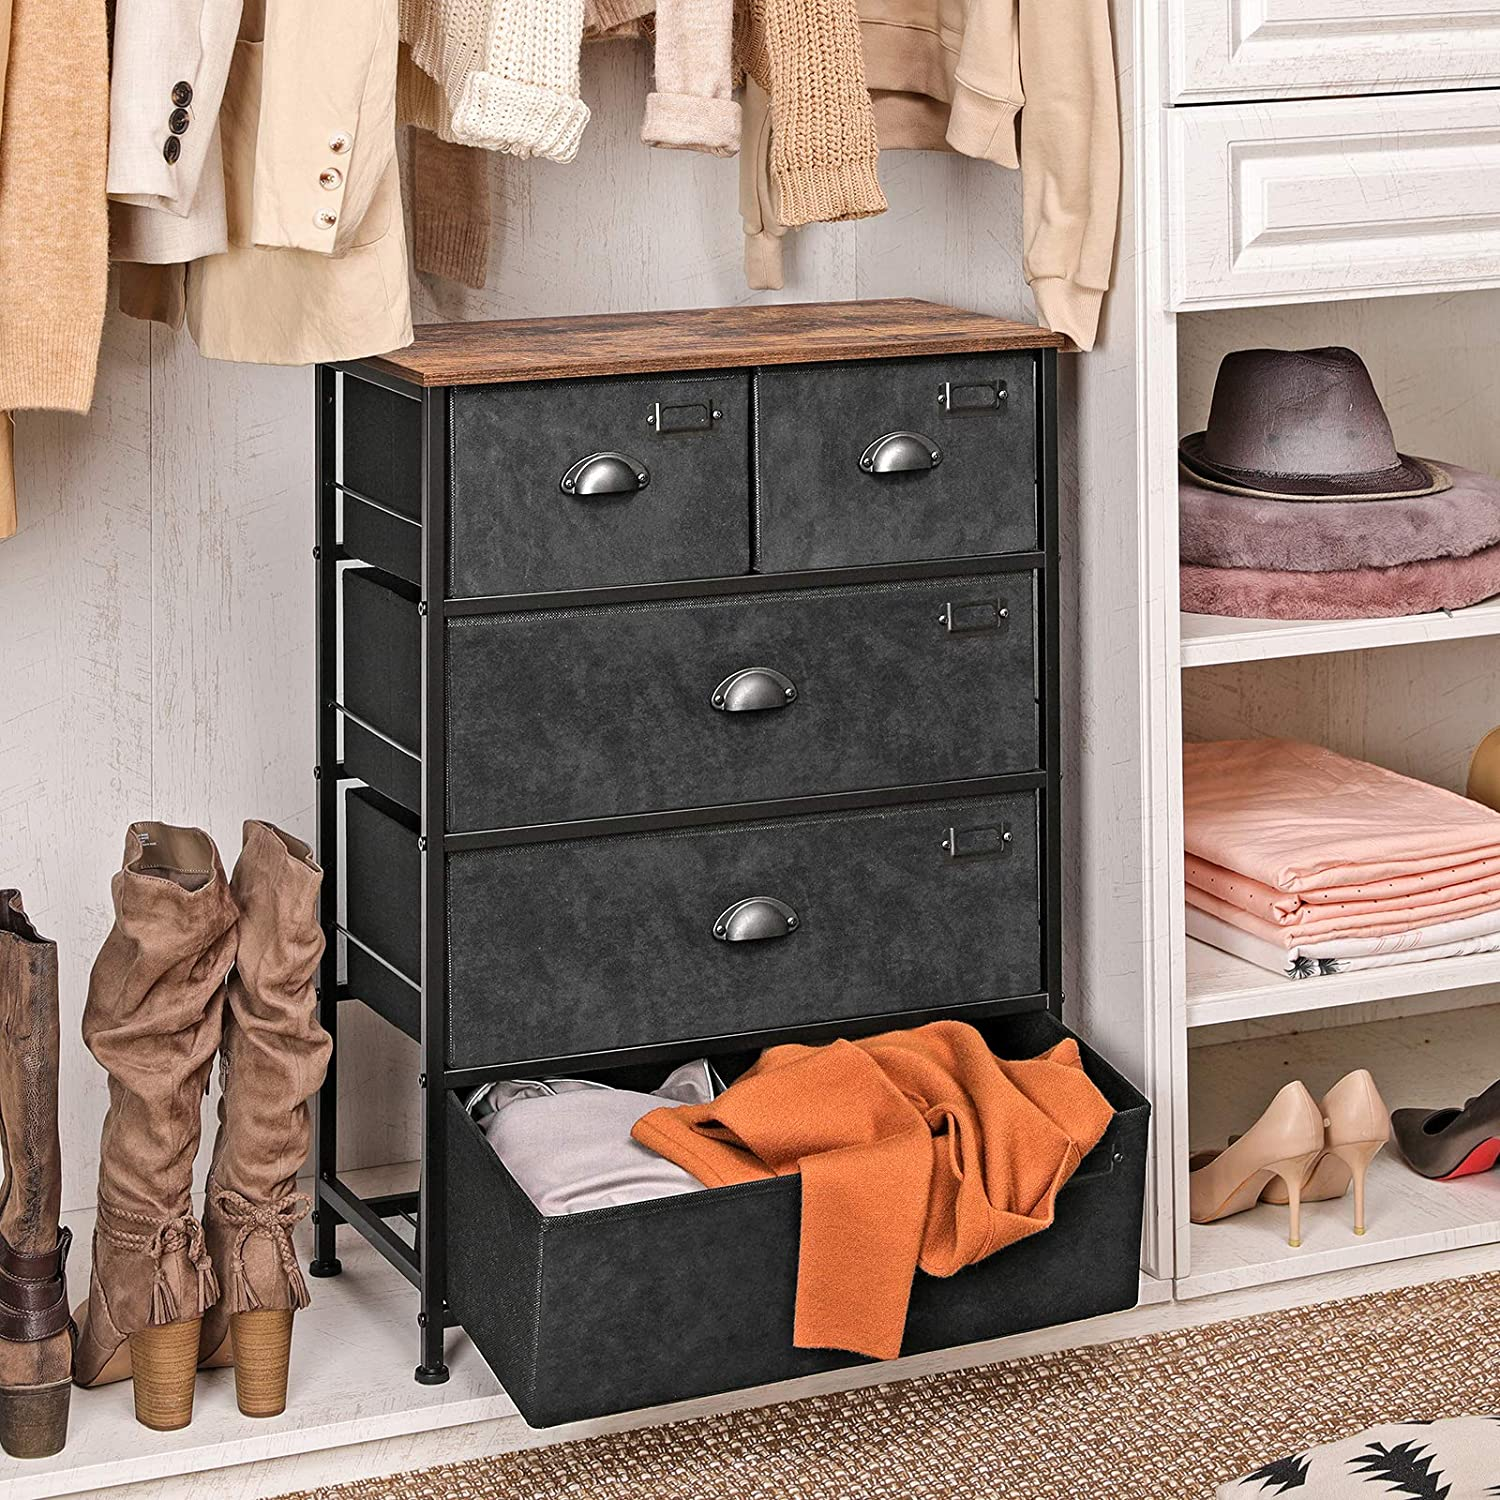 SONGMICS Fabric Drawer Dresser, Storage Dresser Tower with 5 Drawers, Labels, Wooden Top, Industrial Style Closet Storage, for Living Room, Hallway, Nursery, Rustic Brown and Black ULVT45H: Home Improvement